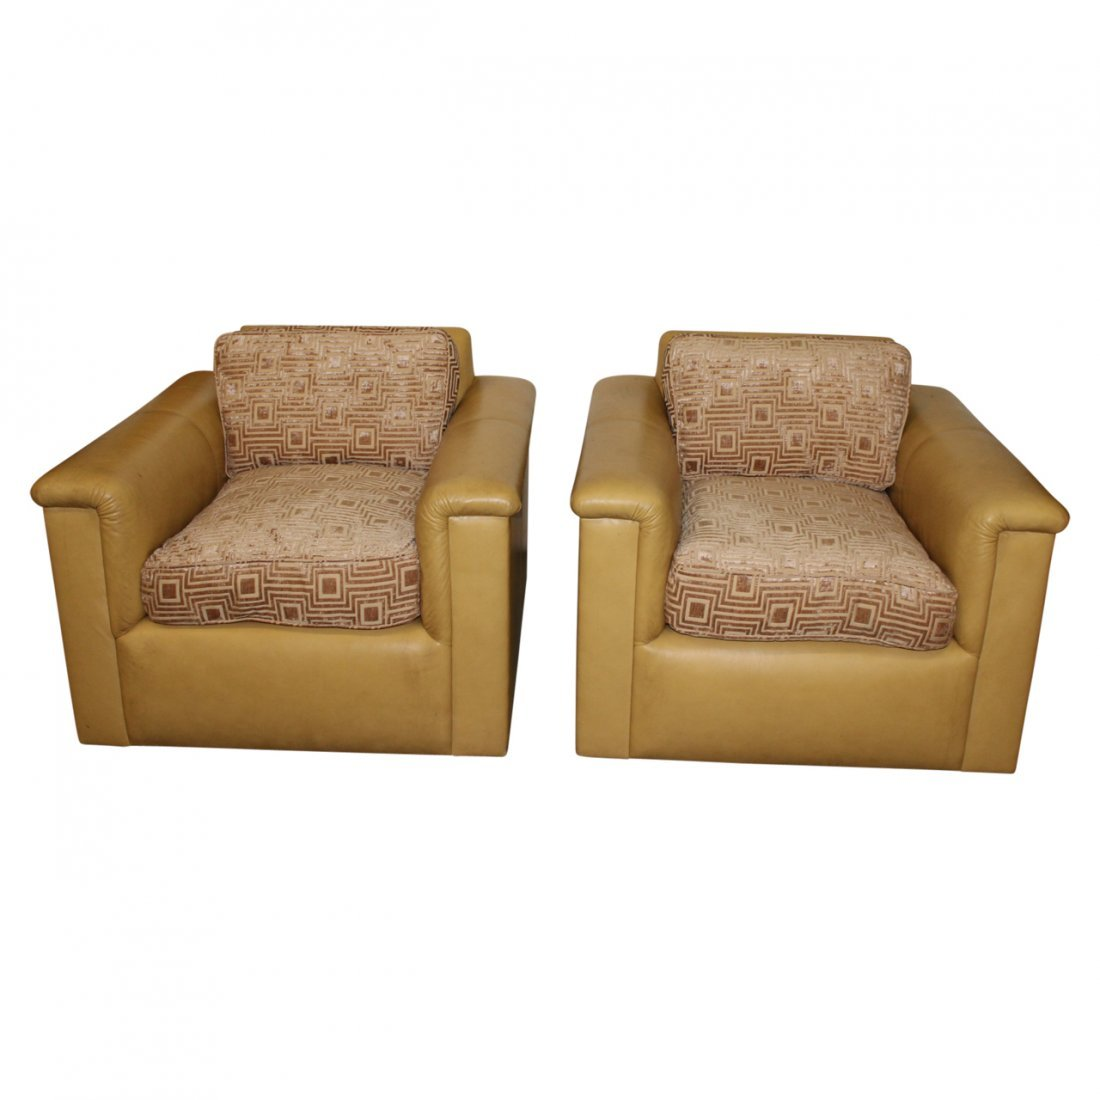 Pair J. Robert Scott Leather and Cloth Club Chairs